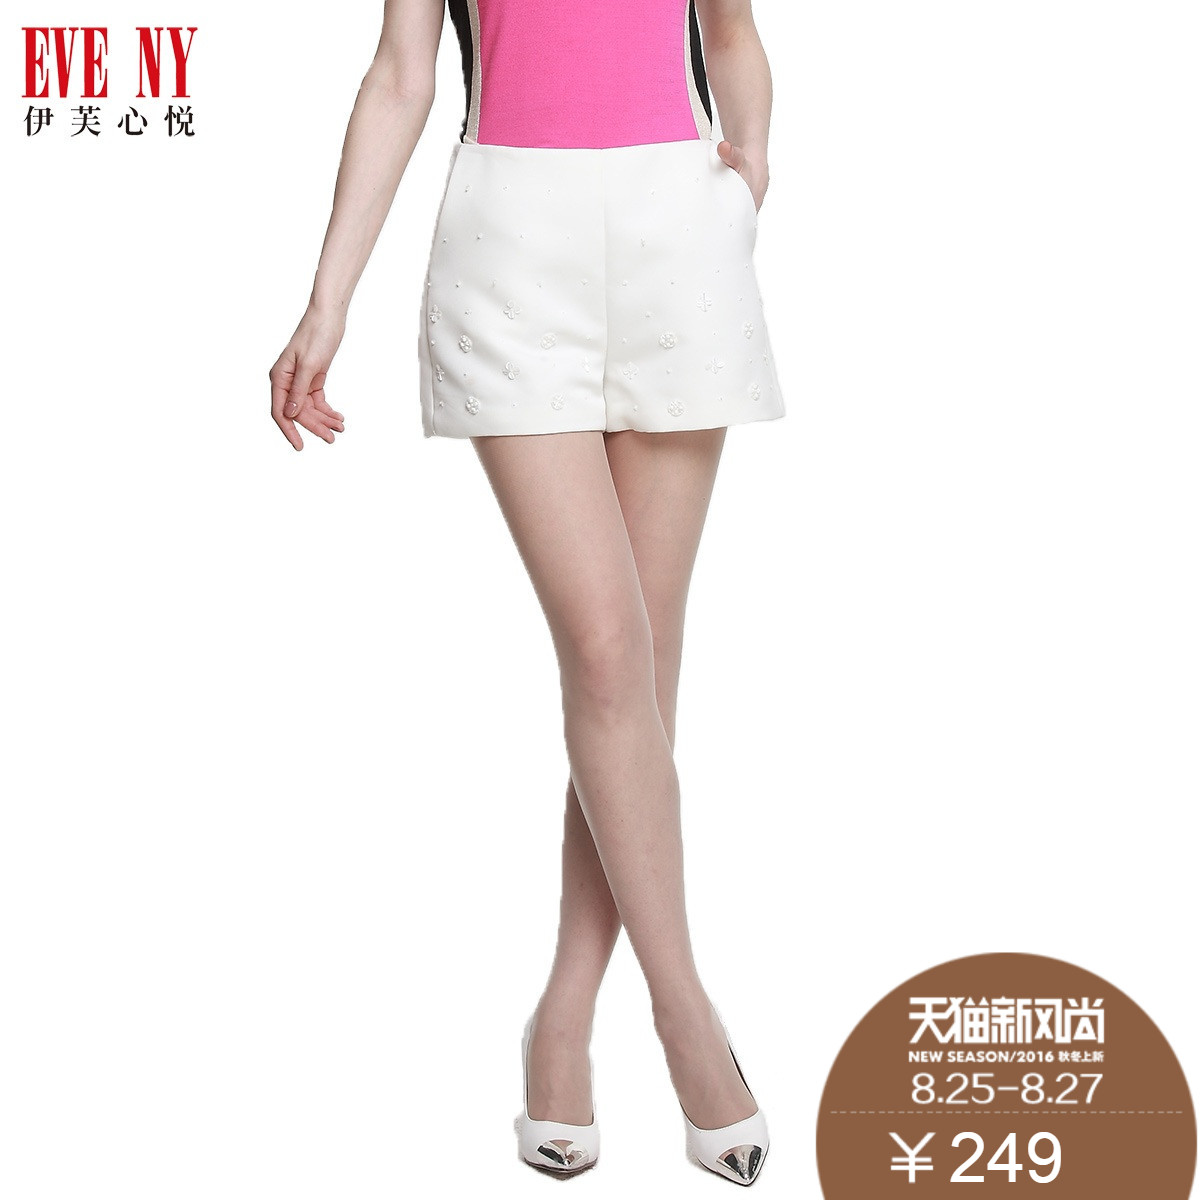 Eve moods lynx custom 2015 mature elegant three-dimensional flowers pure white weila casual shorts 1280 price tag